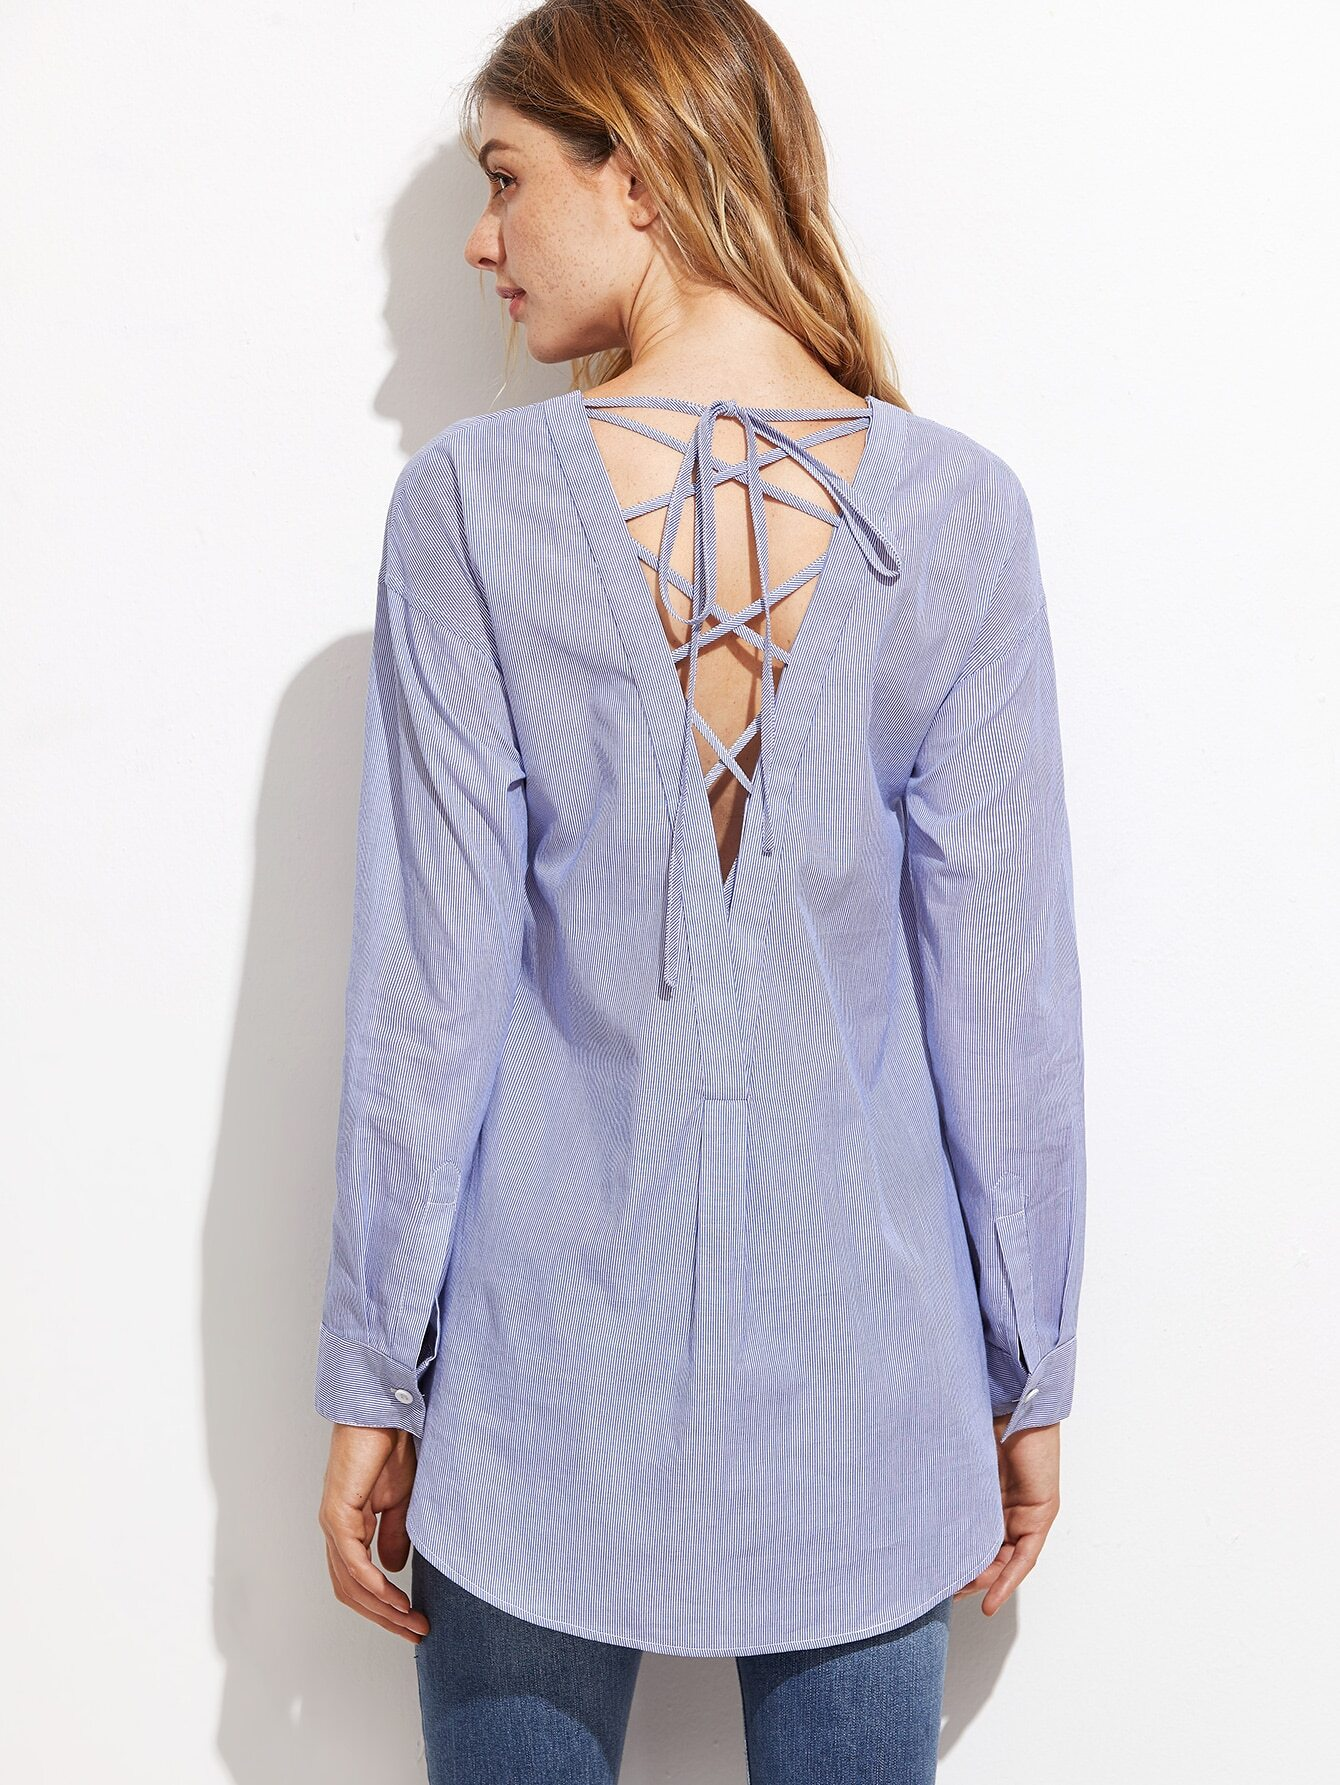 Blue Vertical Striped Lace Up V Back High Low Blouse blouse161010706